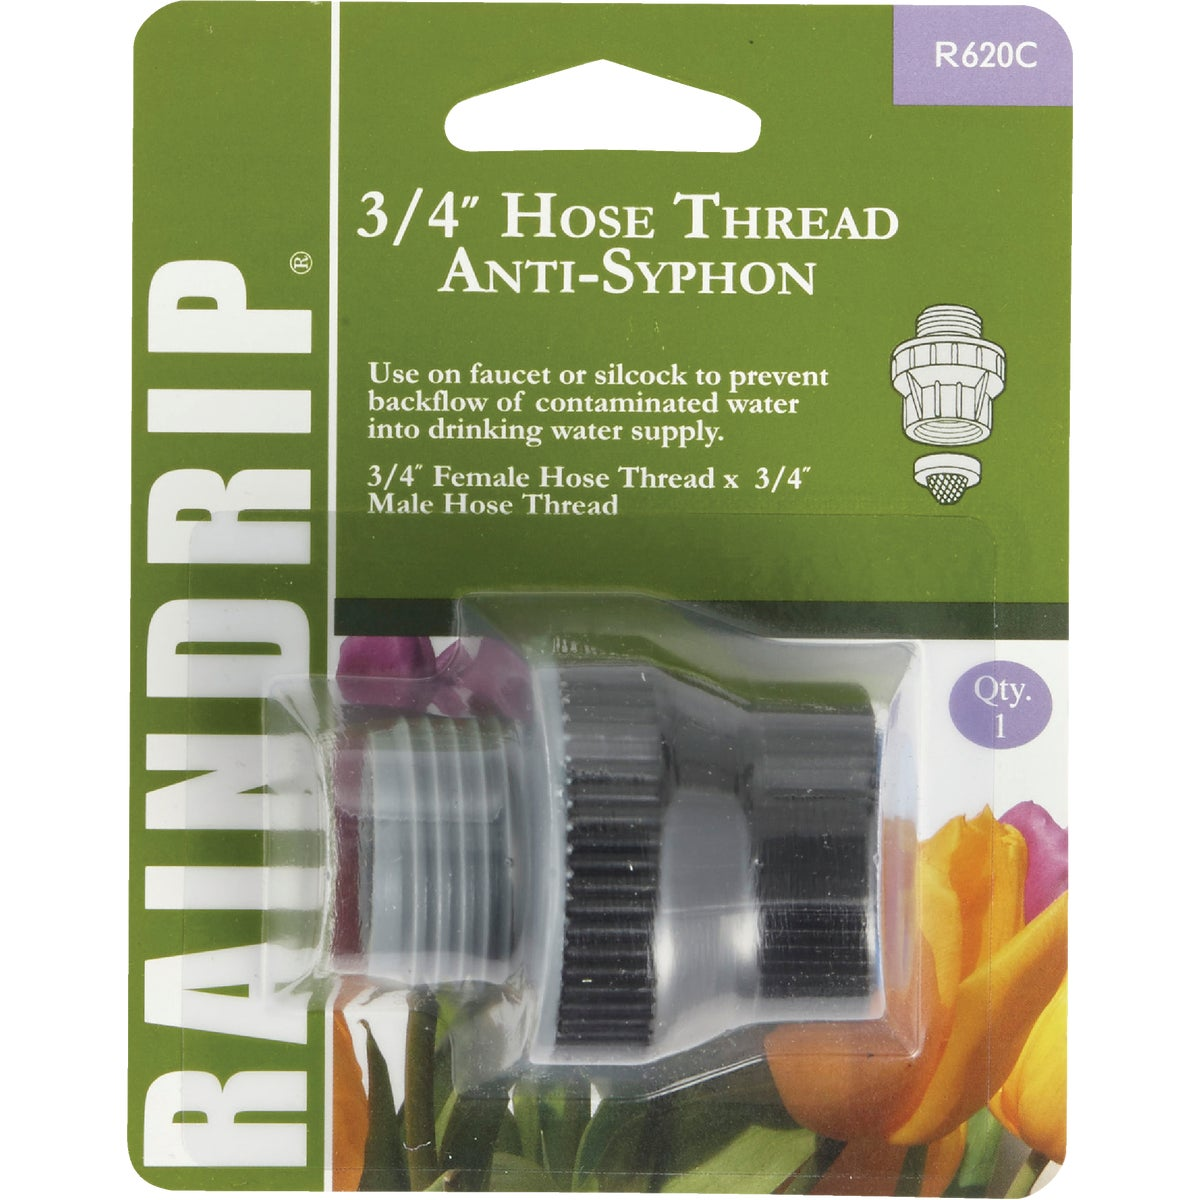 3/4HOSE/HOSE ANTI-SIPHON - R620CT by Raindrip Inc